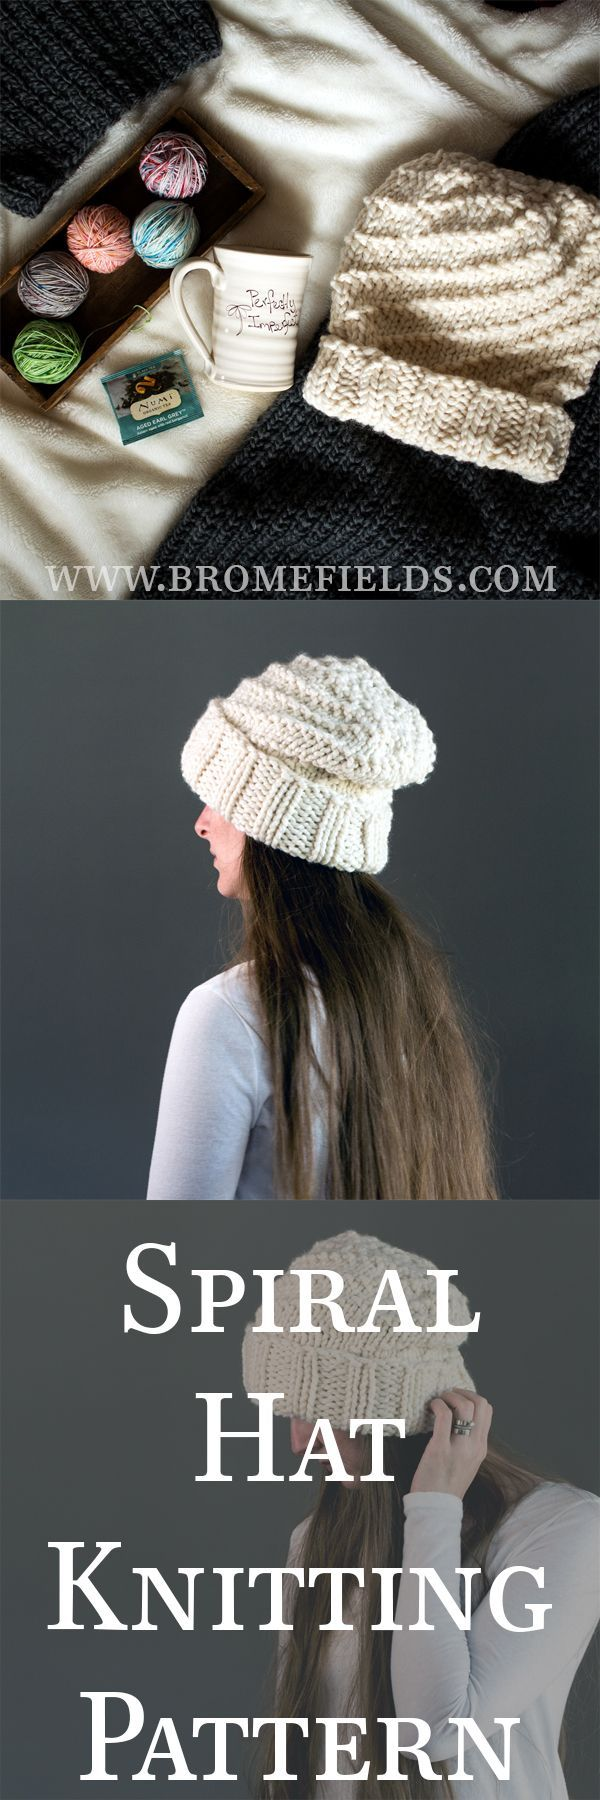 Spiral slouchy hat knitting pattern